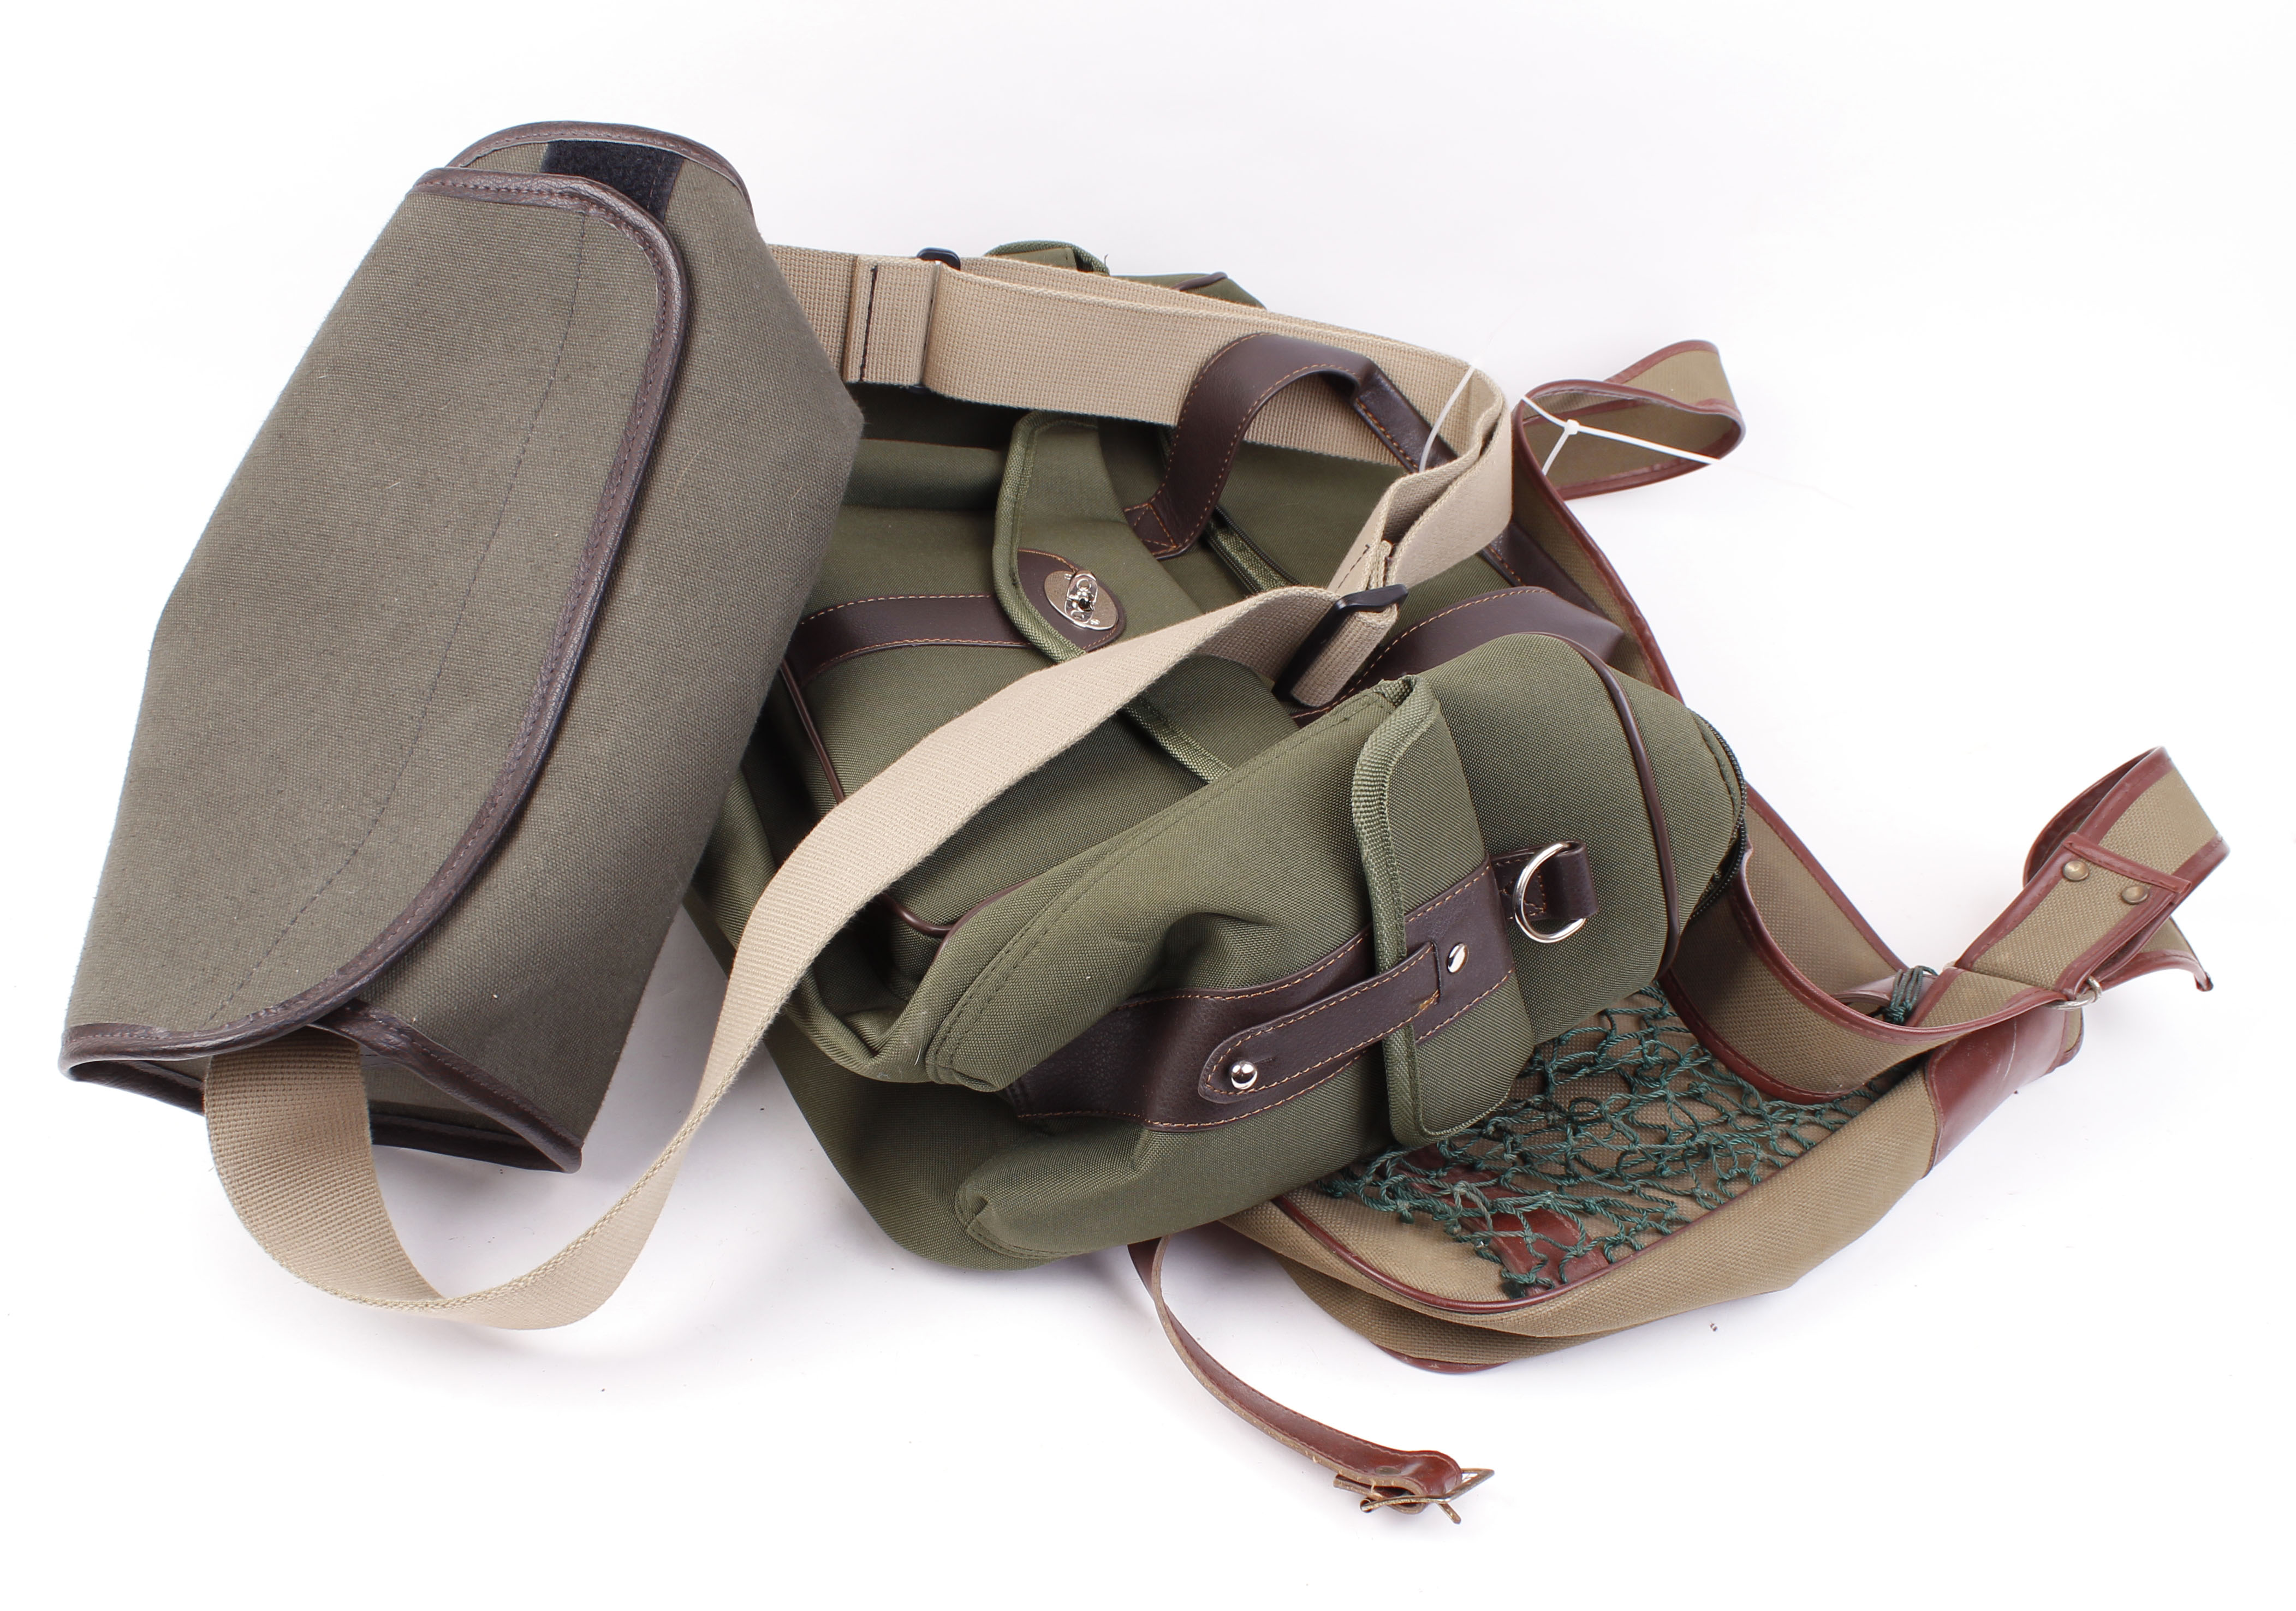 Lot 12 - Grey canvas cartridge bag with webbing strap; two game bags, as new